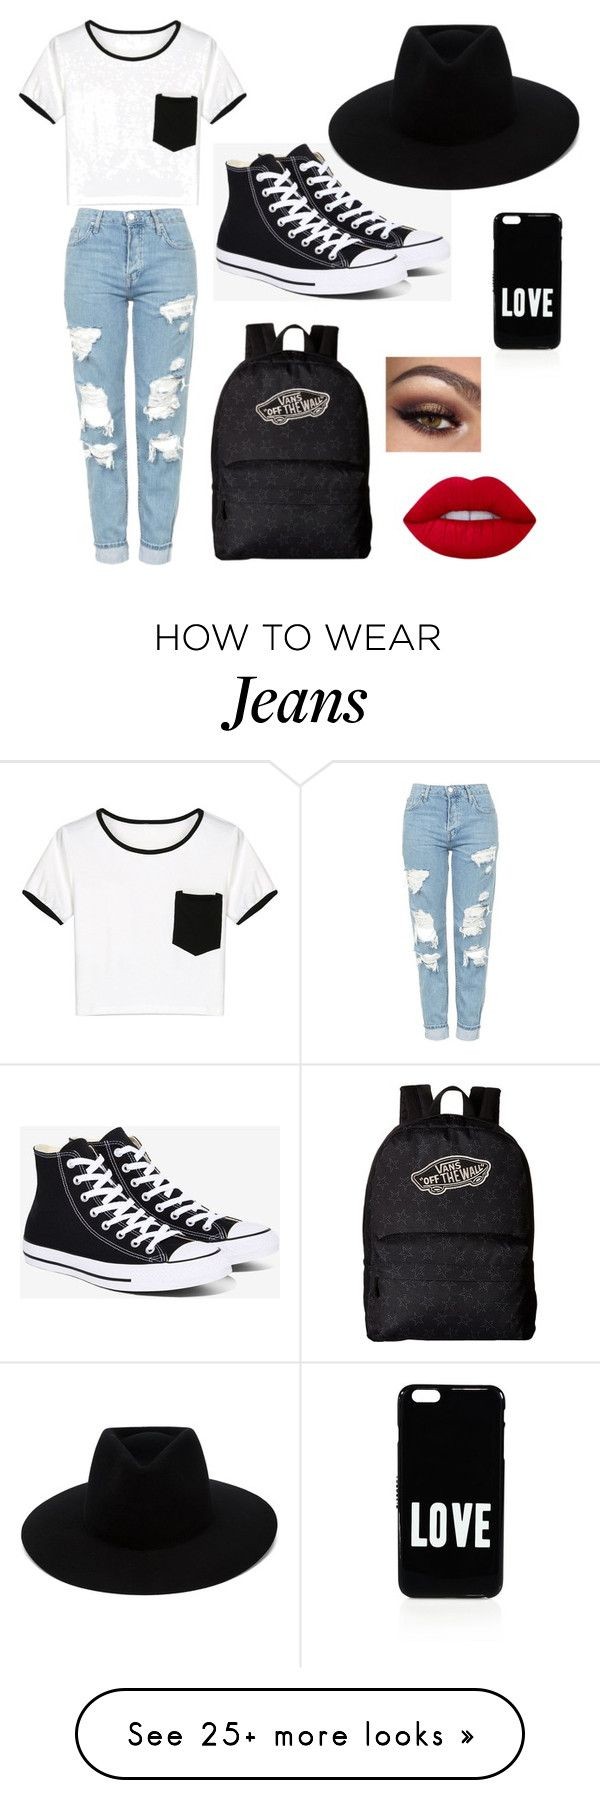 """""""Boyfriend jeans"""" by simina650 on Polyvore featuring Topshop, WithChic, Converse, Vans, rag & bone, Lime Crime and Givenchy"""